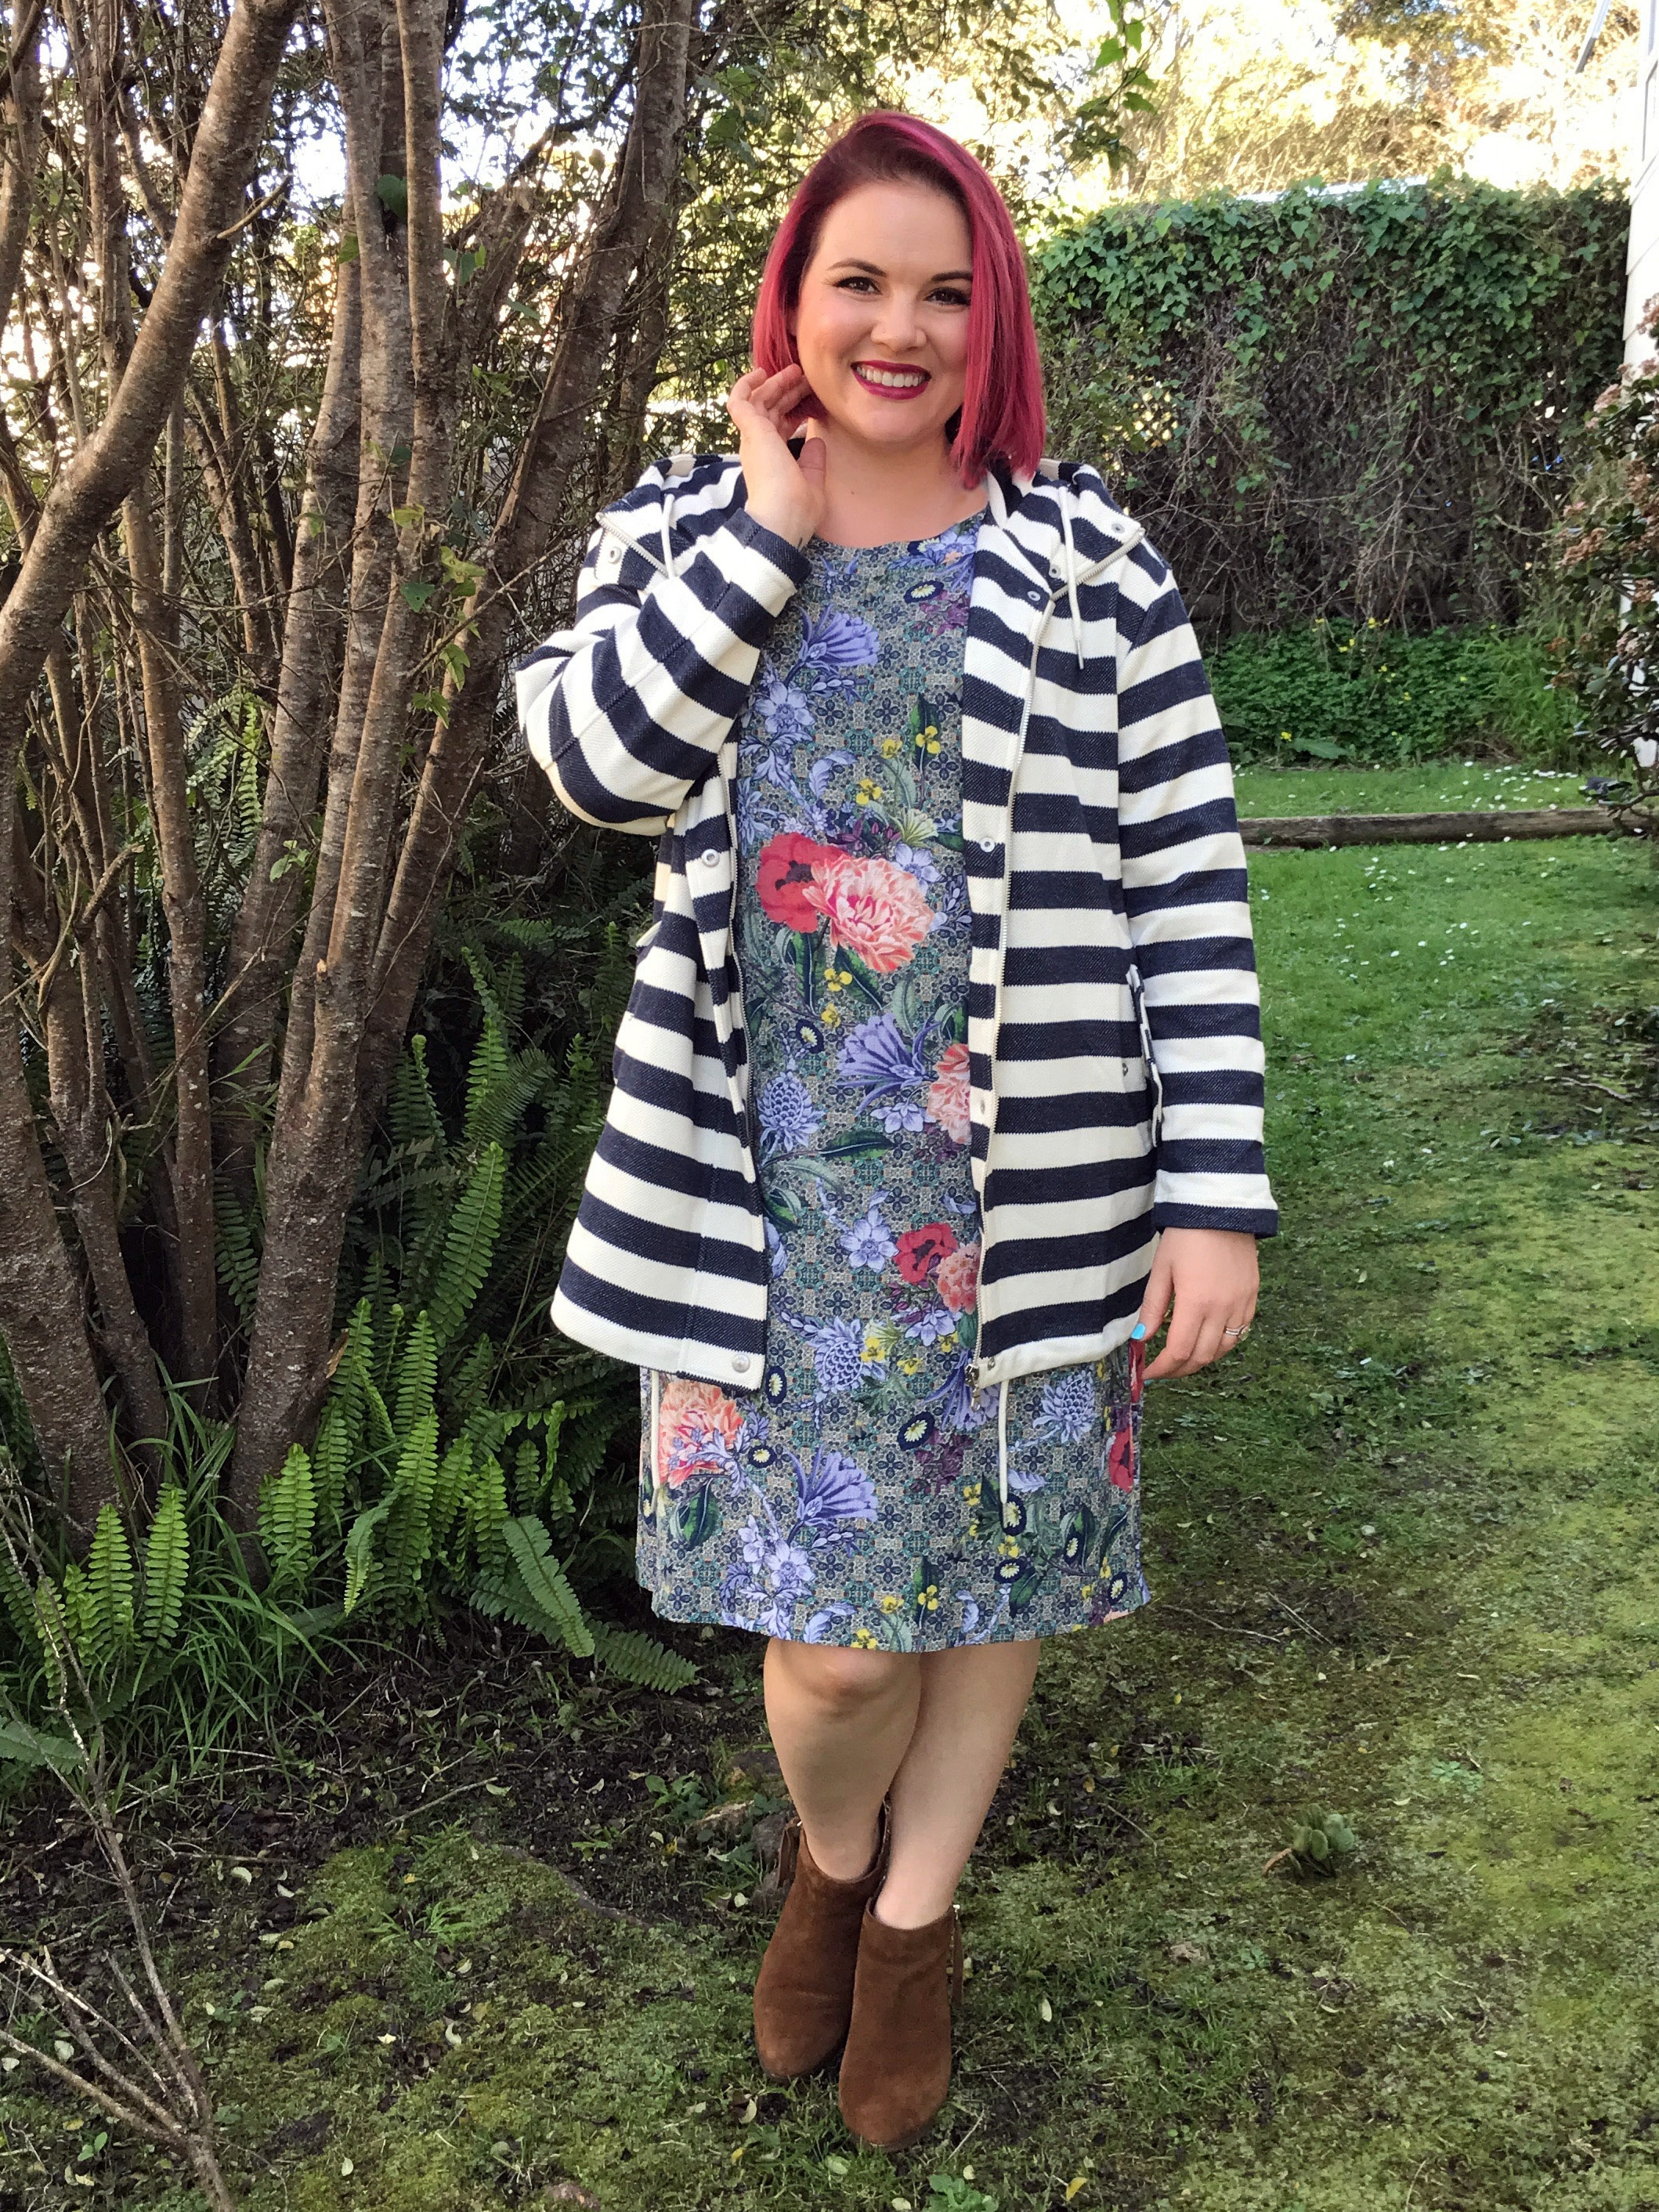 The Garden Mania dress $219 and Striped Jacket (also available in grey) $279 in sizes 8-16.